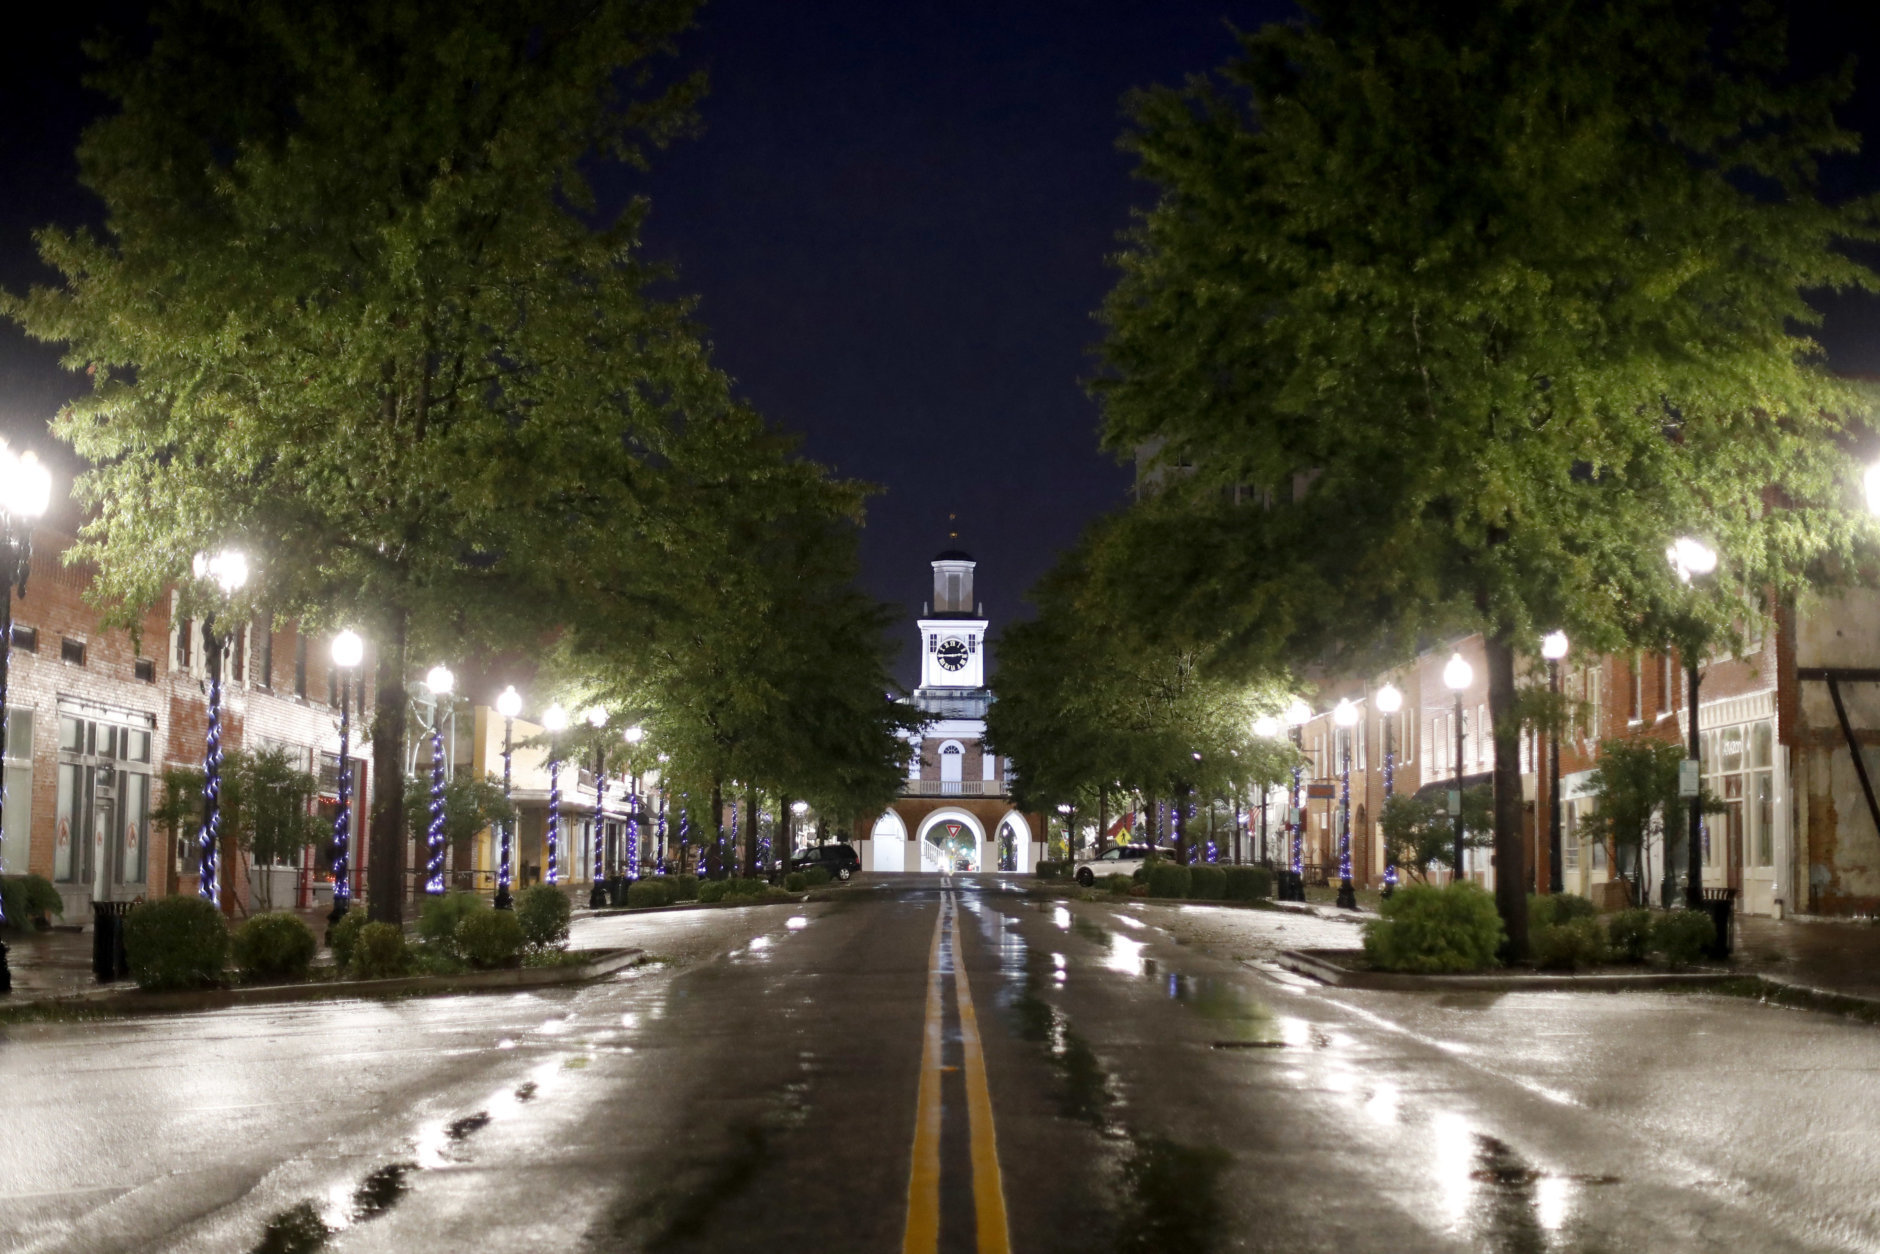 A downtown street sits empty under a citywide curfew as the threat of additional flooding from Florence remains, in Fayetteville, N.C., Sunday, Sept. 16, 2018. (AP Photo/David Goldman)